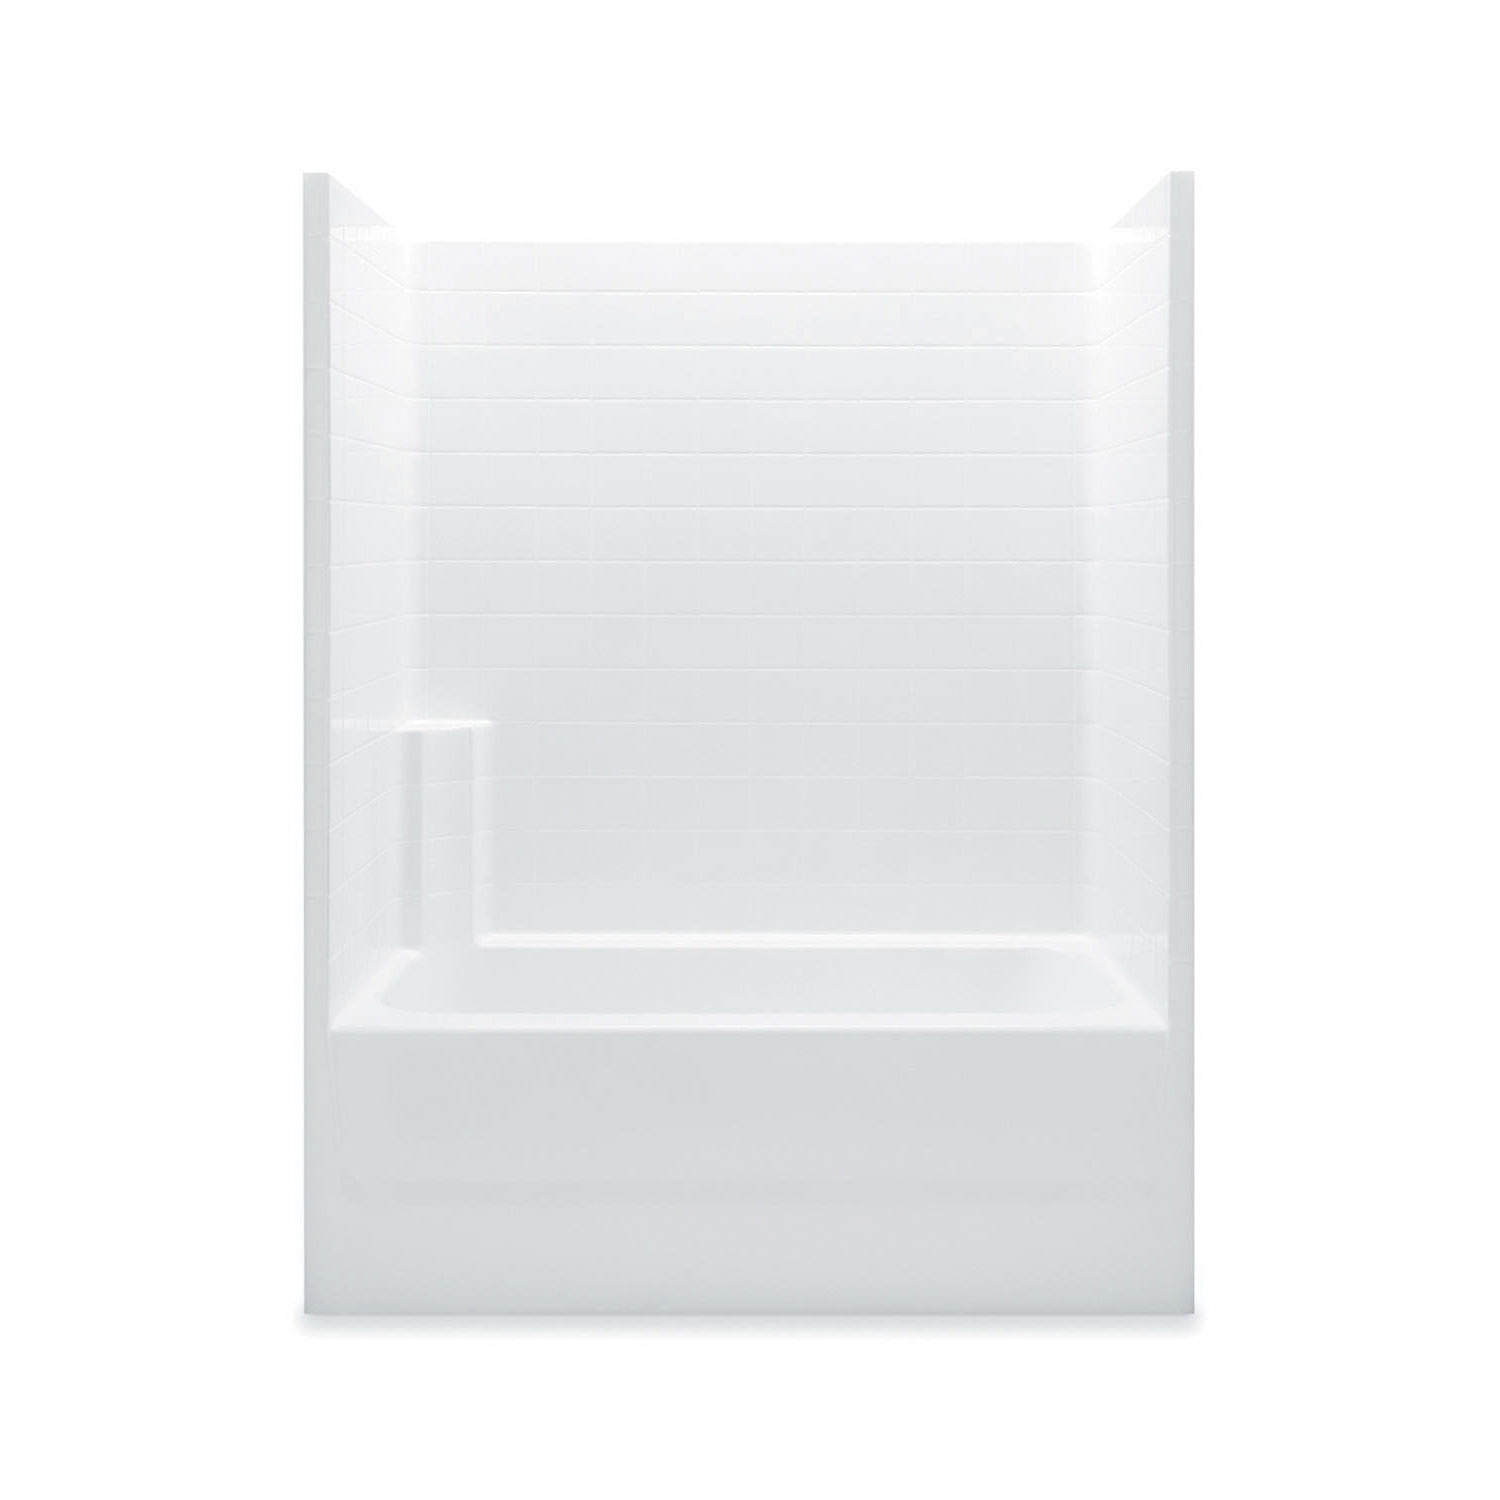 Aquatic 2603CTR-WH Tub Shower, Everyday, 60 in W x 72 in H, Gel-Coated/White, Domestic